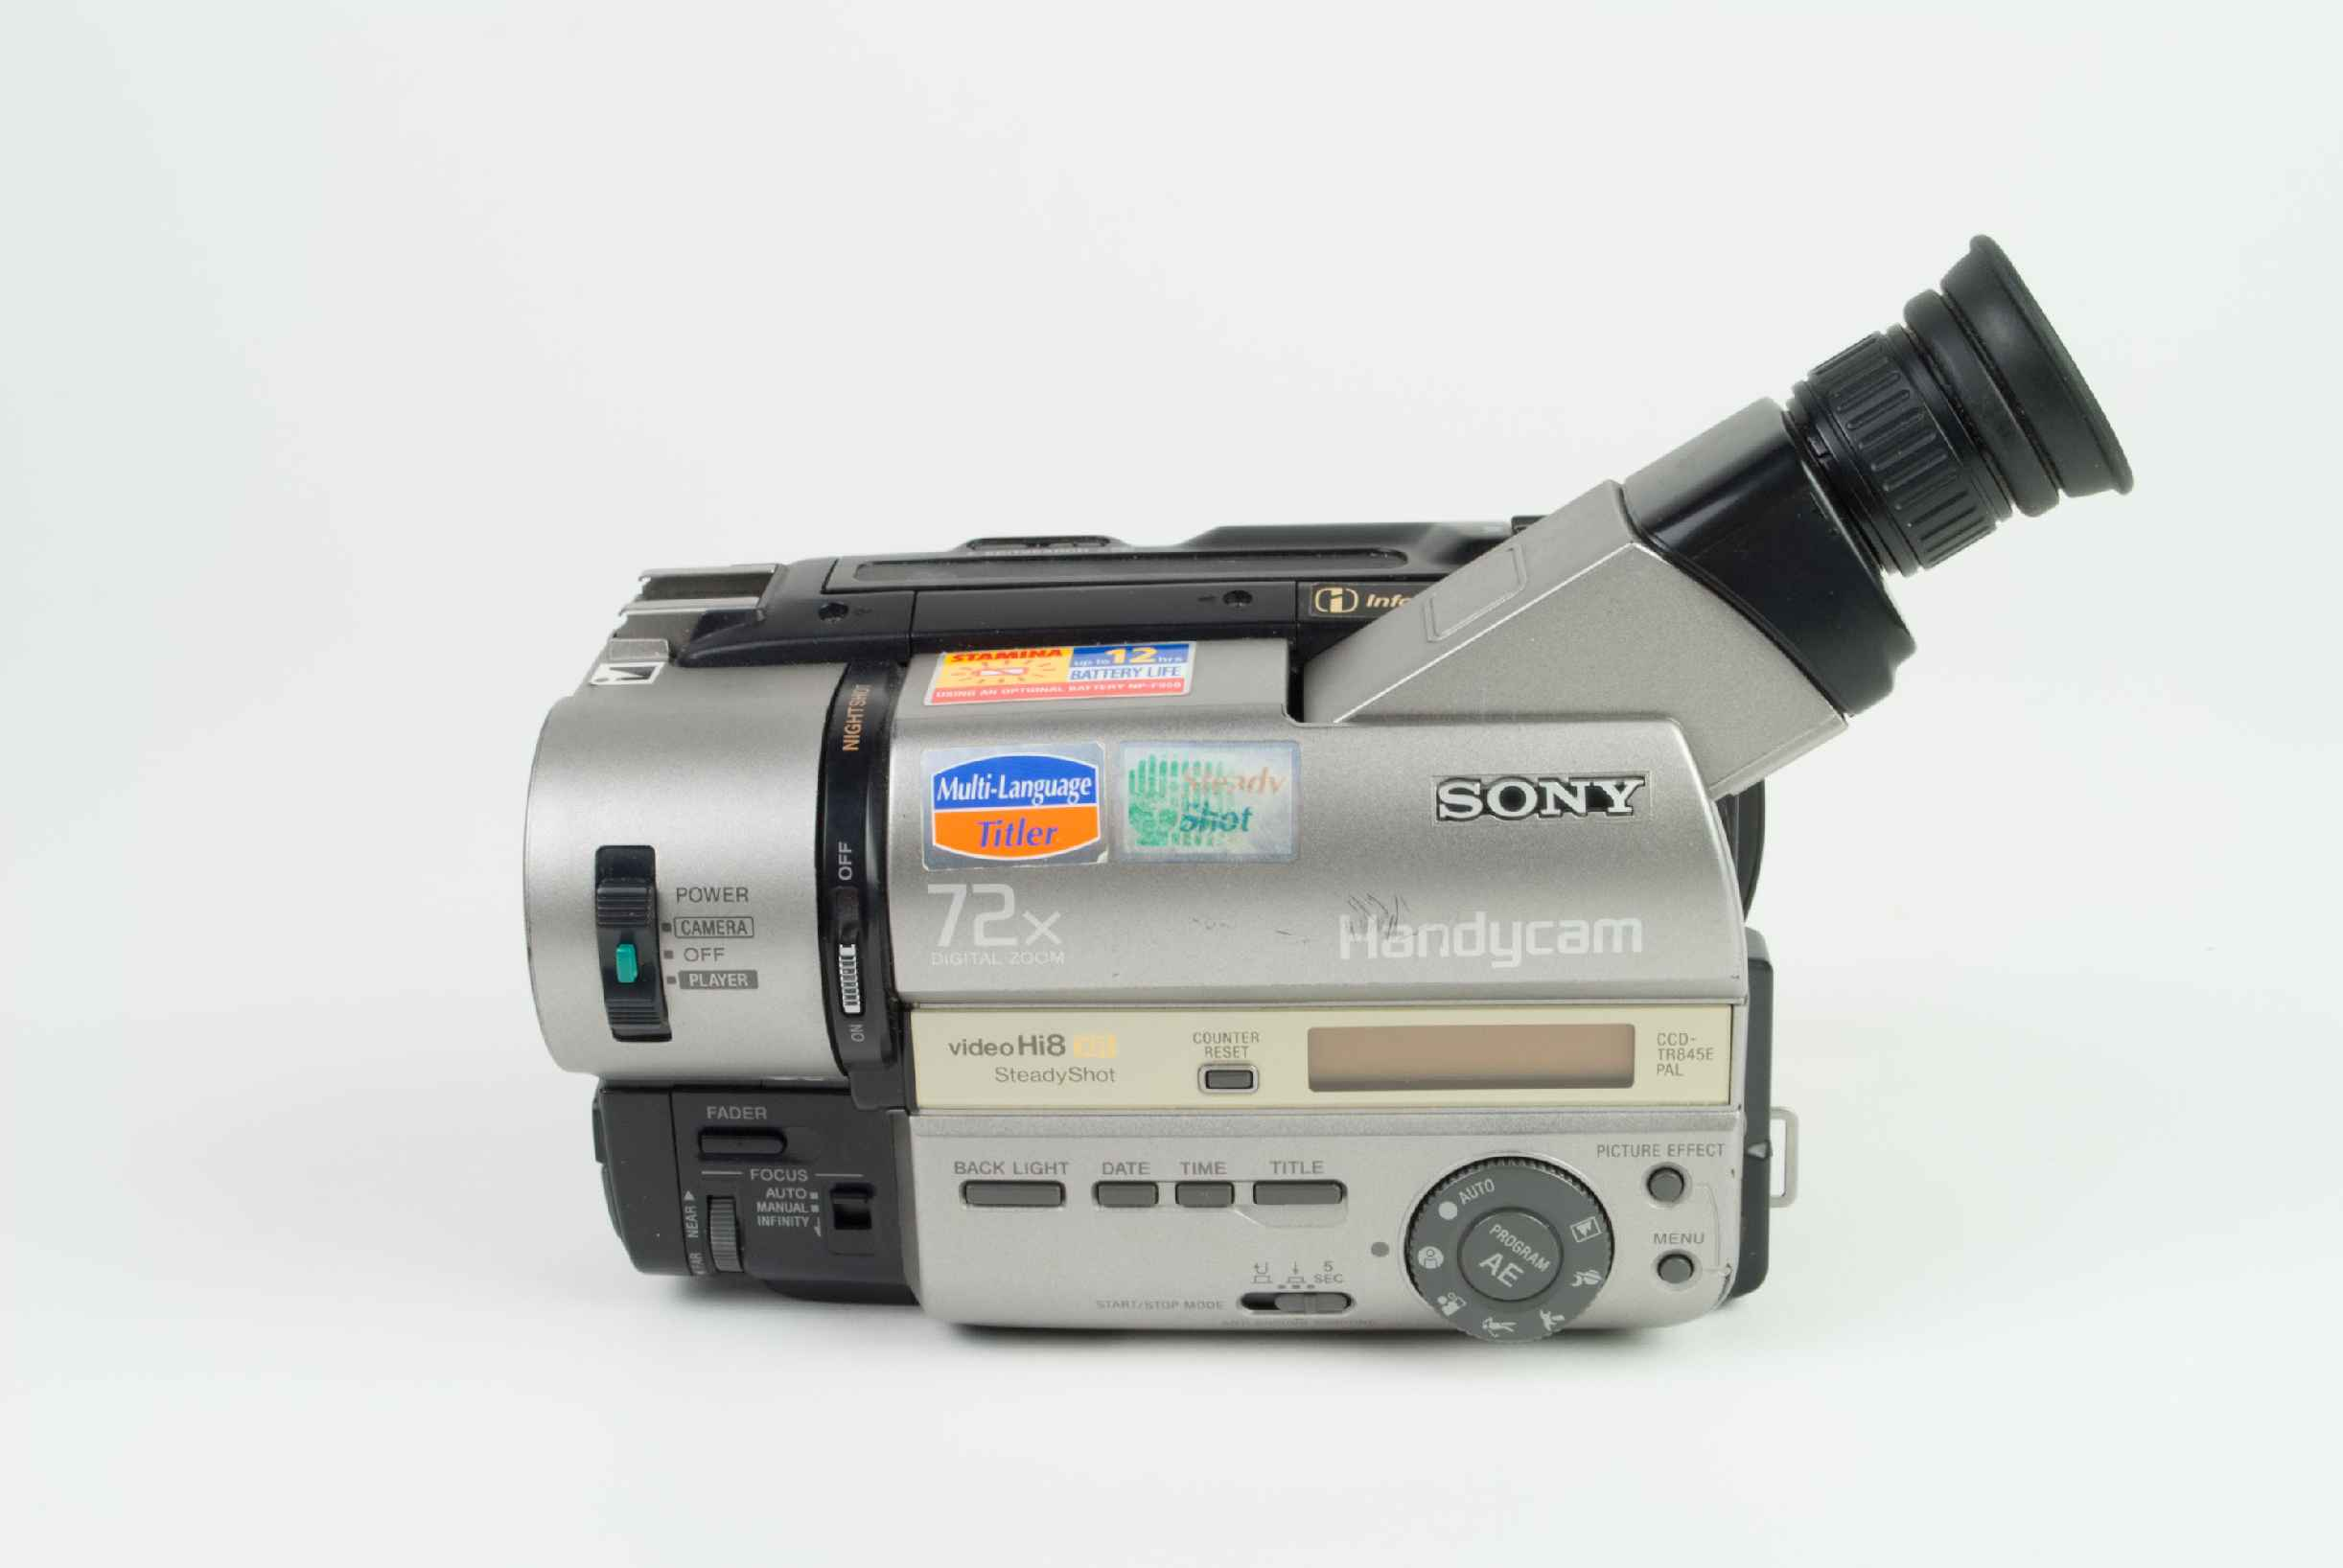 Sony CCD-TR845E PAL, Video Equipment - Spare Parts and